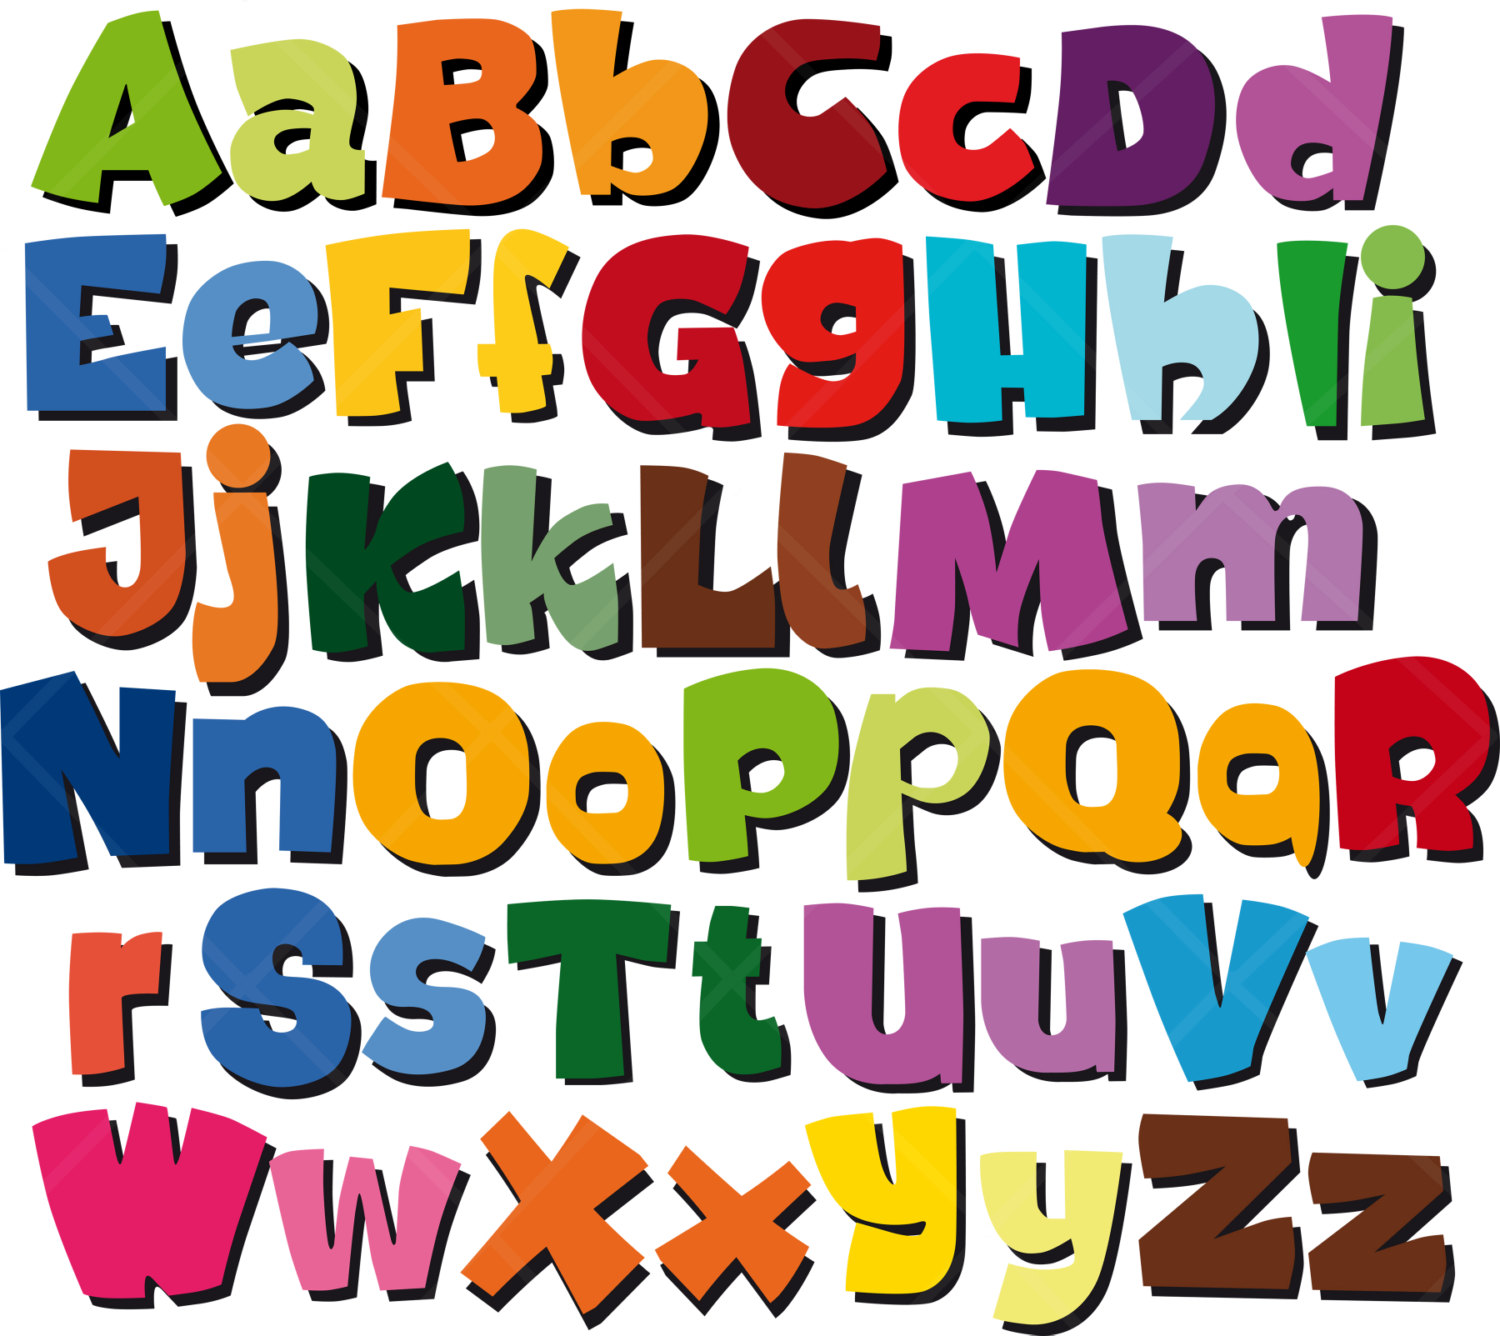 Alphabet Clipart For Kids Free Clipart I-Alphabet clipart for kids free clipart image 3 image-5